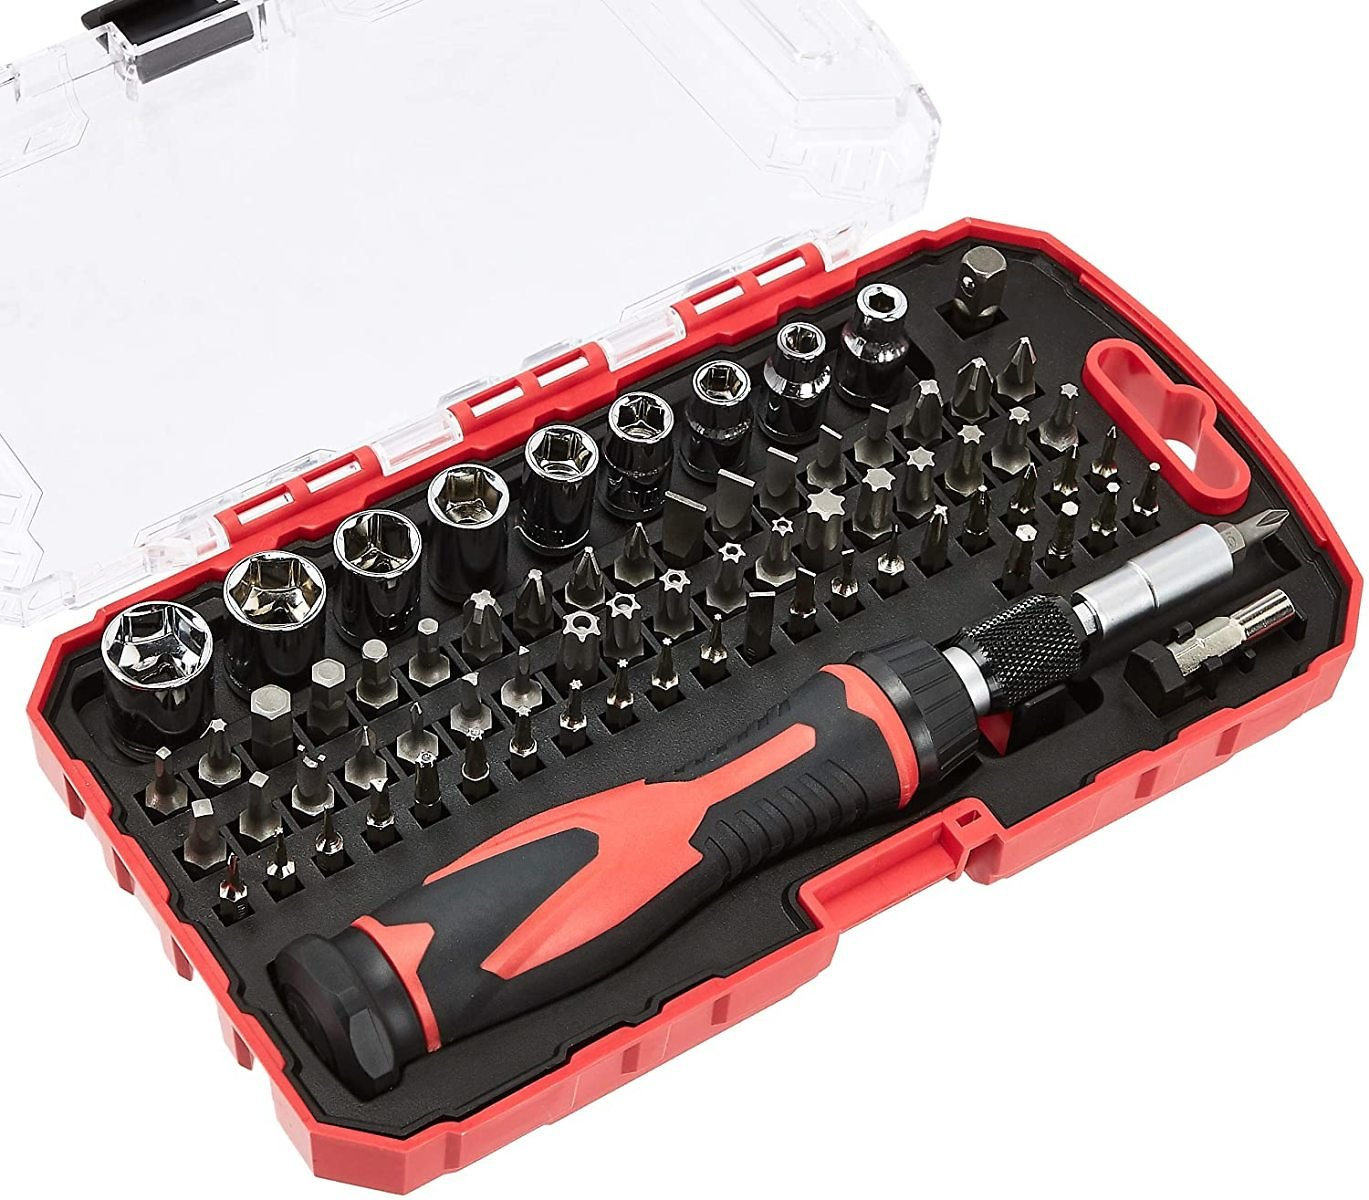 Amazon Basics 73-Piece Magnetic Ratchet Wrench and Screwdriver Set for $12.77